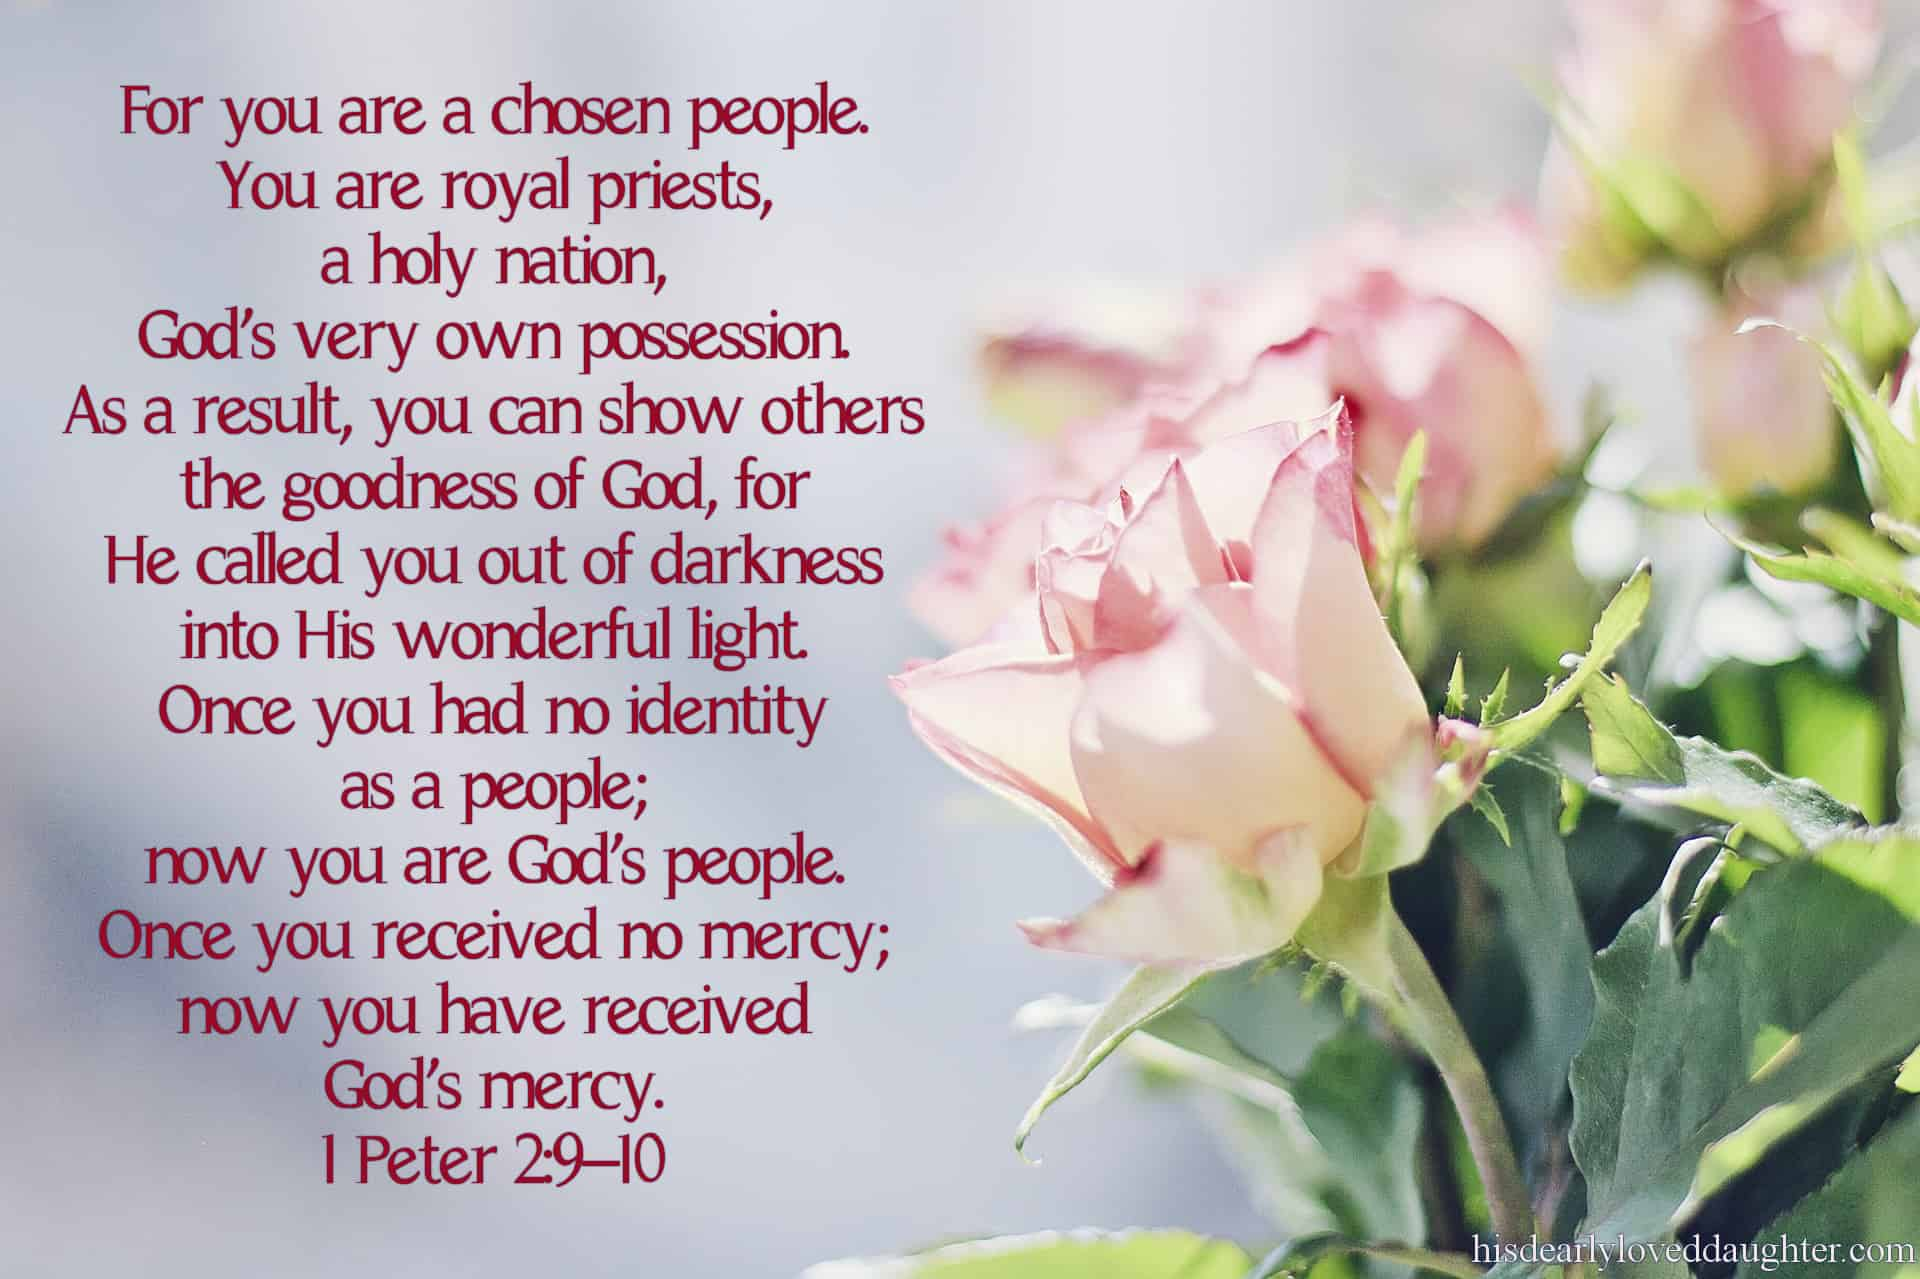 For you are a chosen people. You are royal priests, a holy nation, God's very own possession. As a result, you can show others the goodness of God, for He called you out of darkness into His wonderful light. Once you had no identity as a people; now you are God's people. Once you received no mercy; now you have received God's mercy. 1 Peter 2:9-10